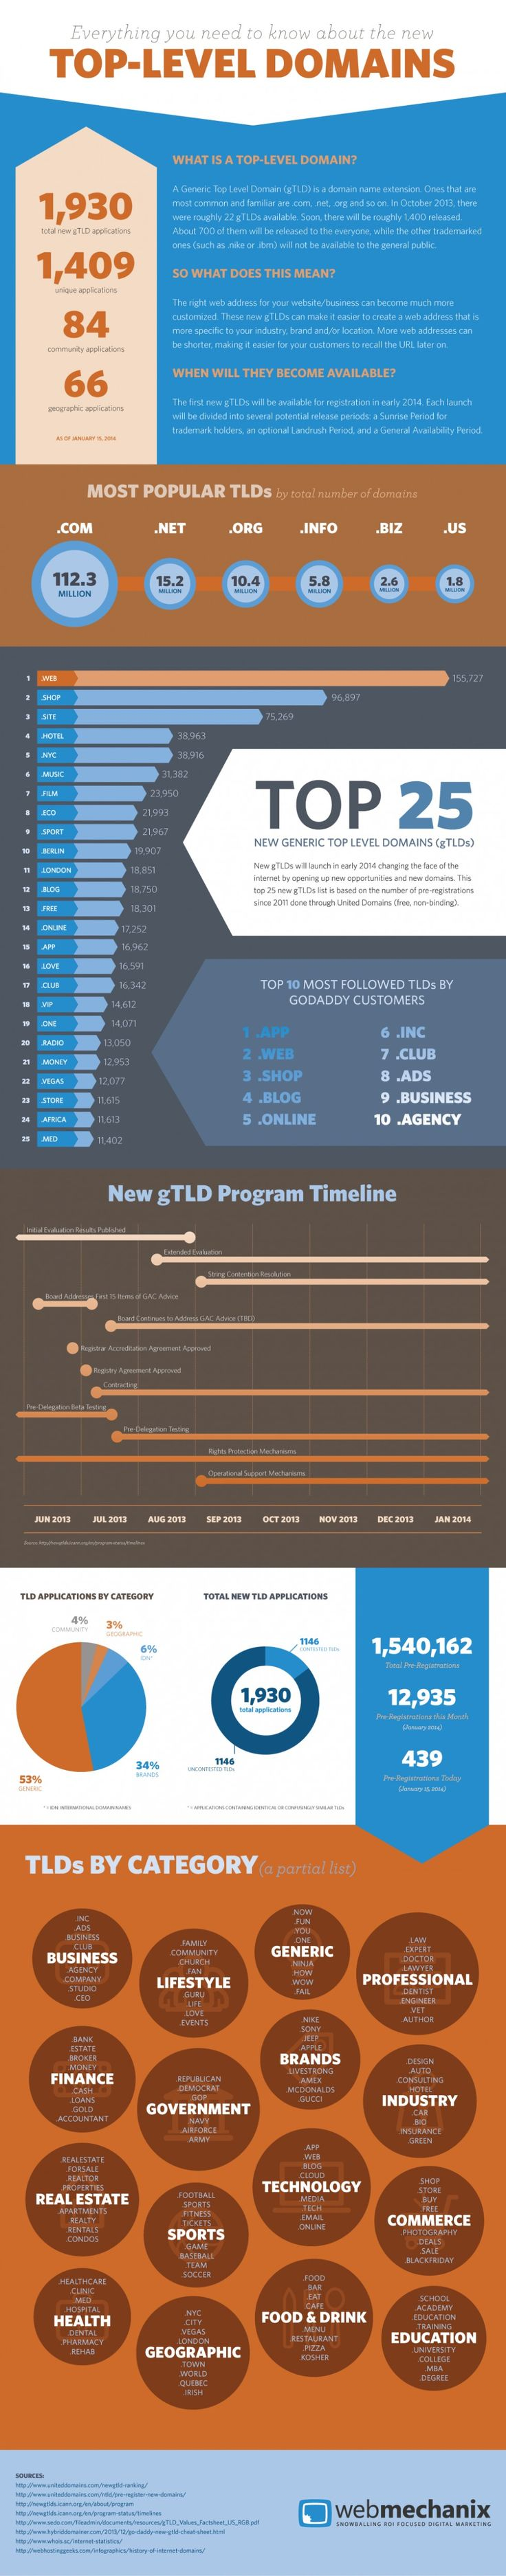 Everything you need to know about new top level domains